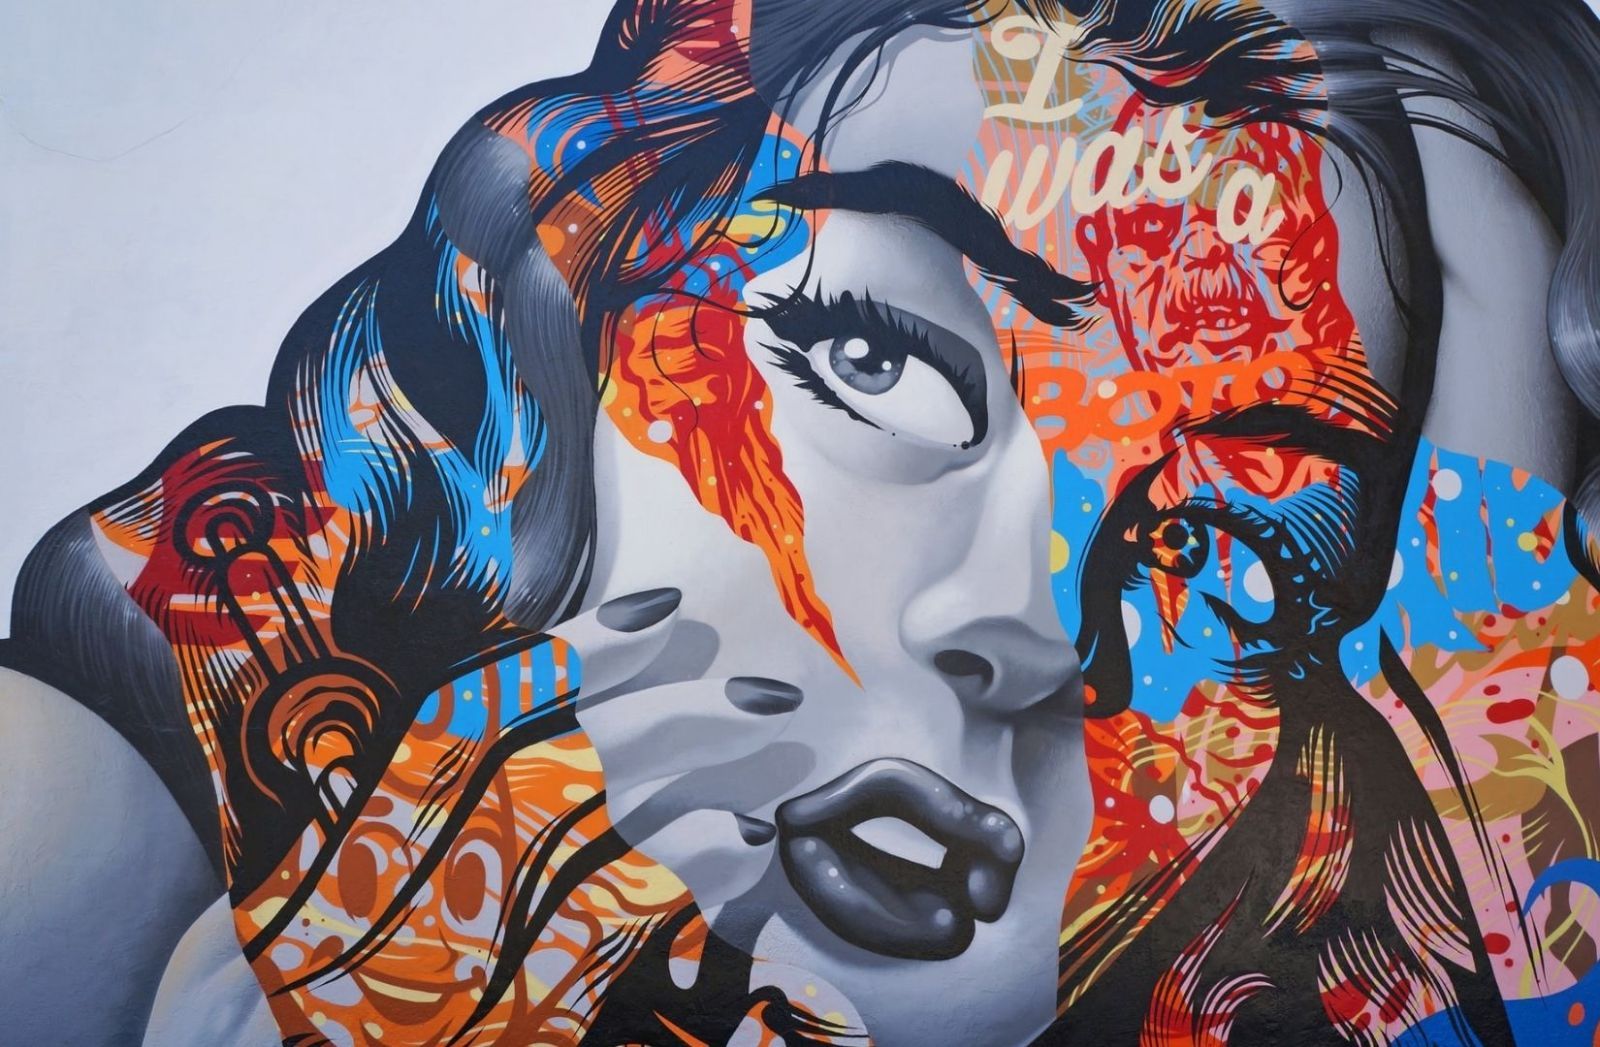 Street Art als Methodik des Ausdrucks in Los Angeles. (Foto: Mike Von, Unsplash.com)